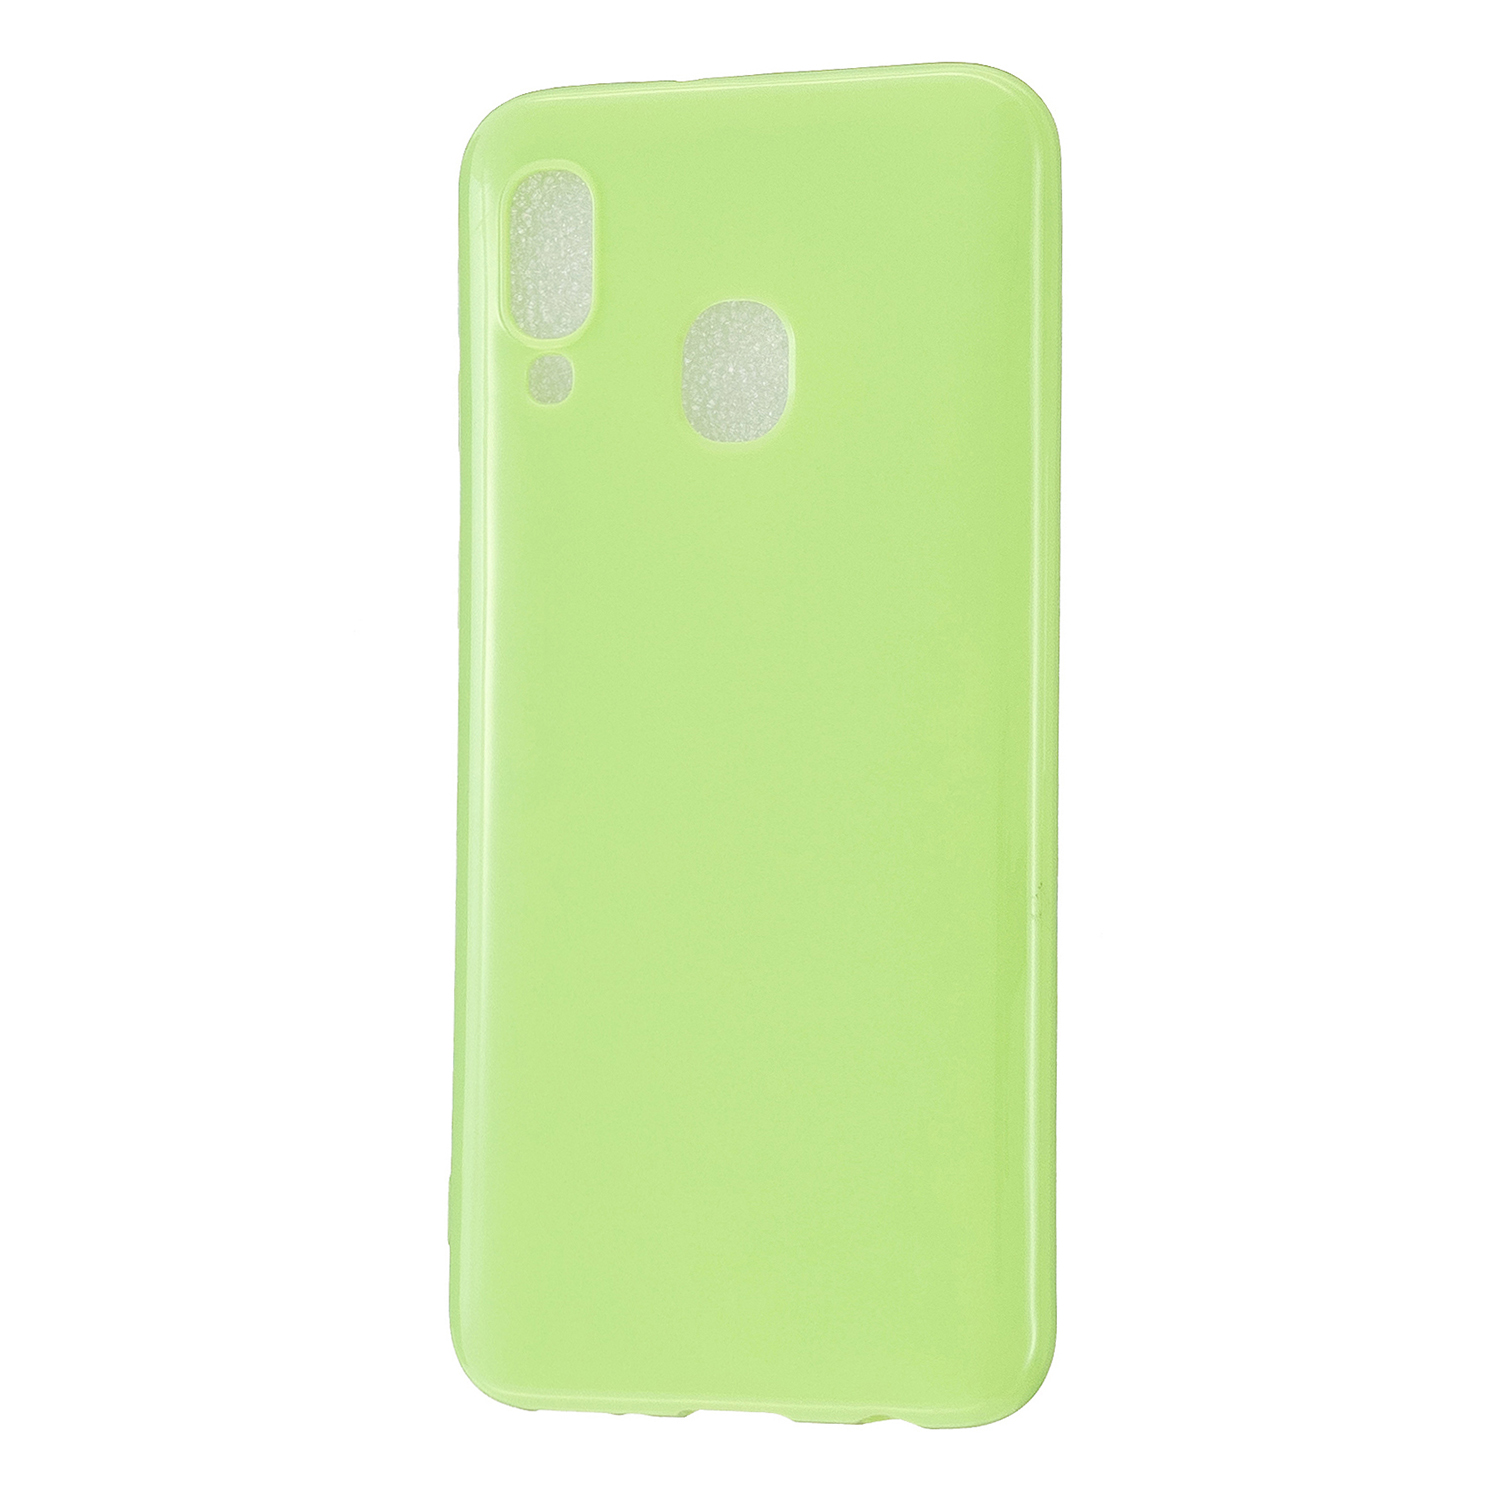 For Samsung A20E/A40/A70 Cellphone Cover Soft TPU Phone Case Simple Profile Scratch Resistant Full Body Protection Shell Fluorescent green